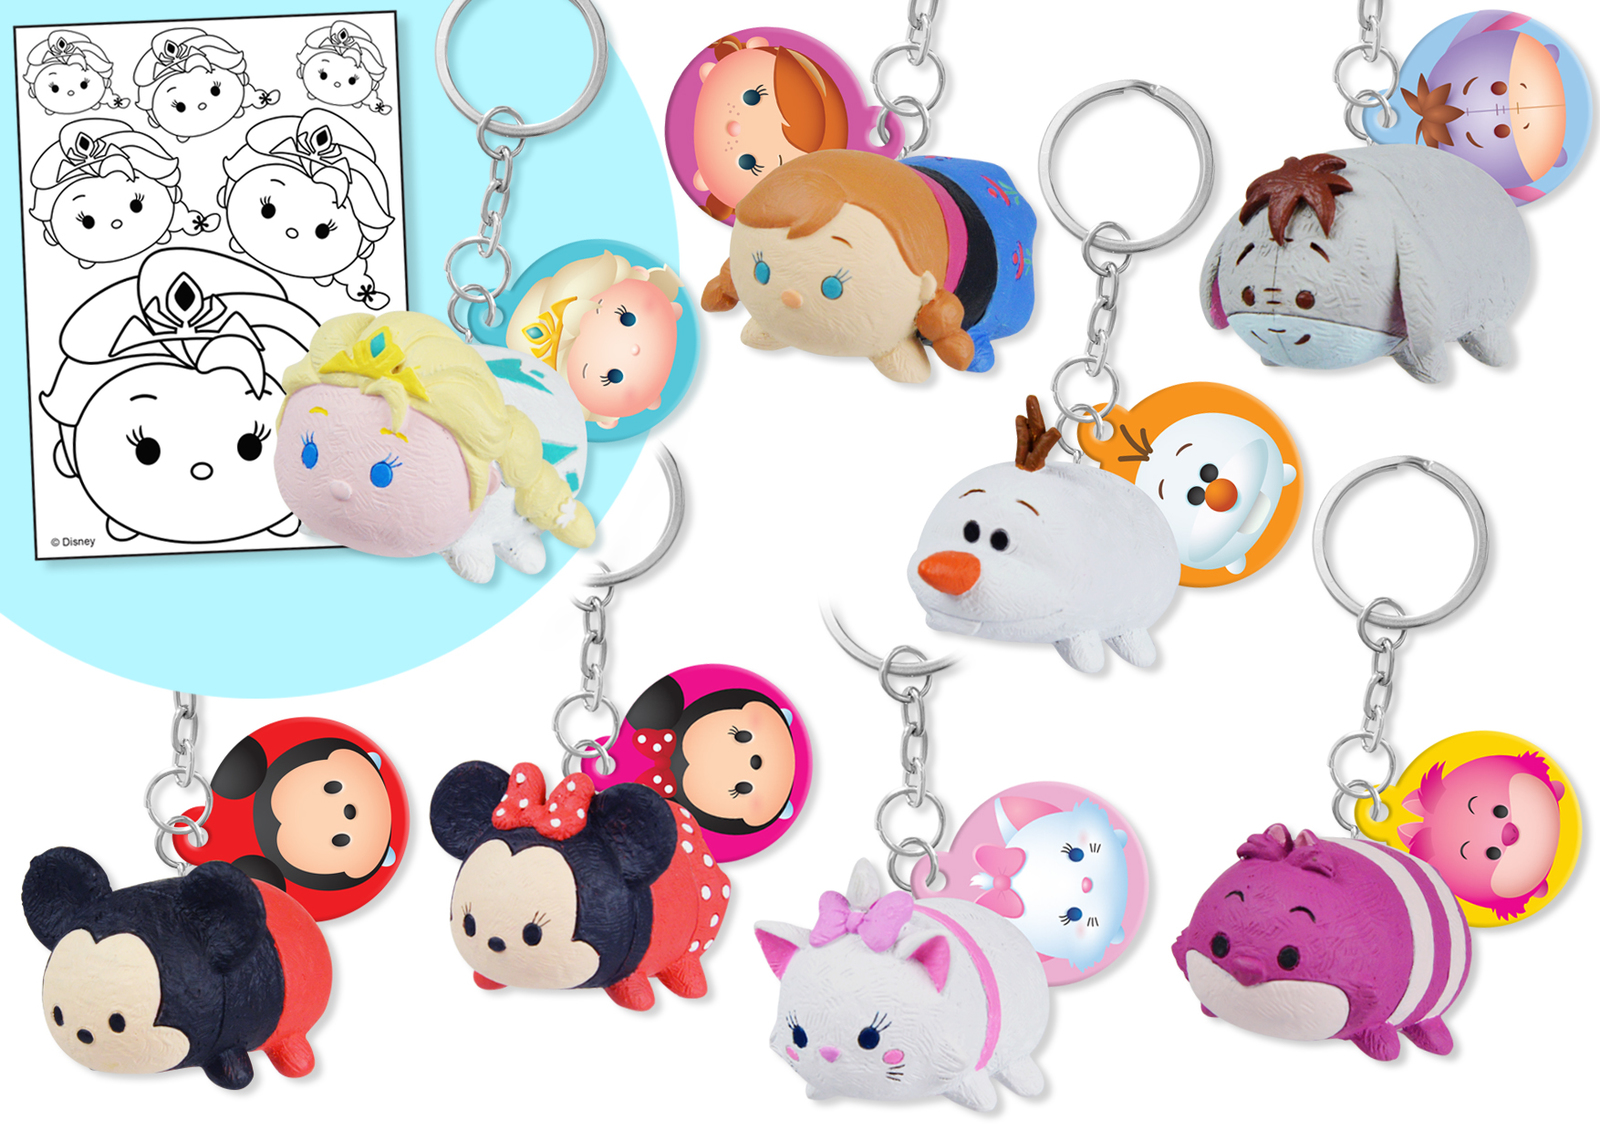 Disney Tsum Tsum Danglers Toy At Mighty Ape Nz